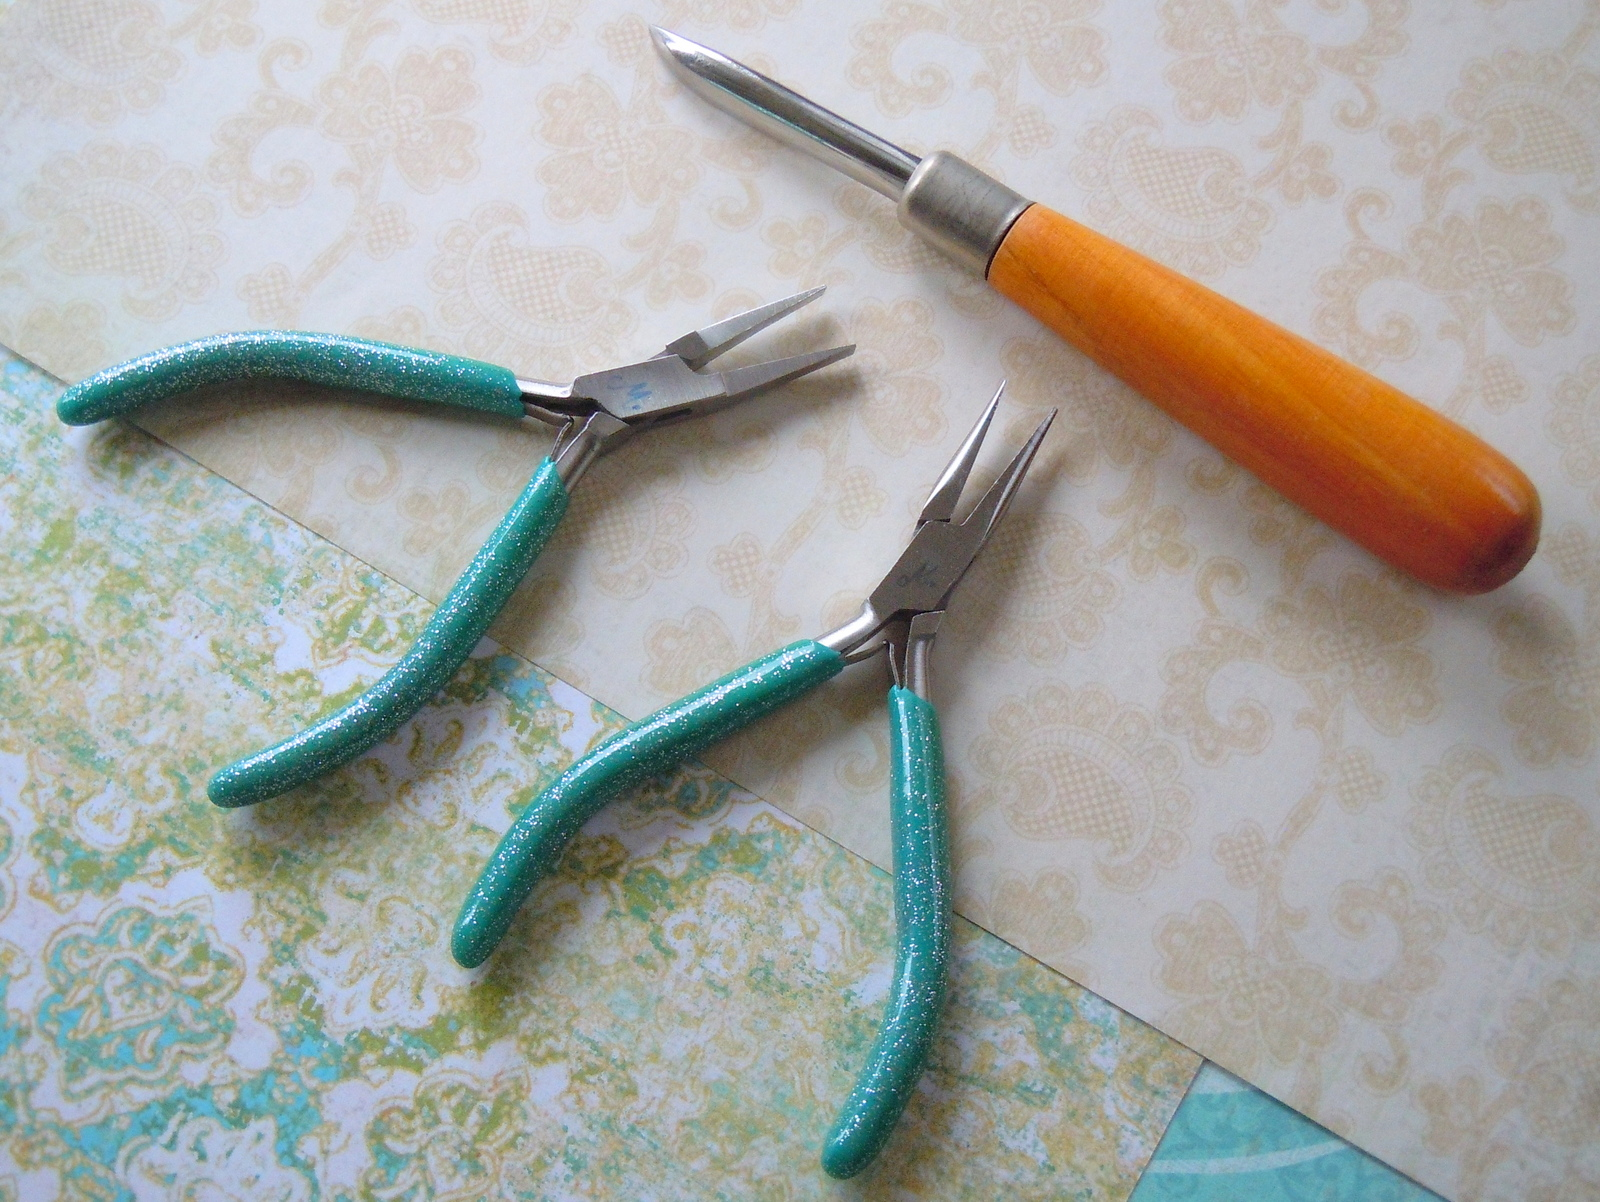 This jewelry-making project requires just three tools: flat-nose pliers, chain-nose pliers, and a steel burnisher.